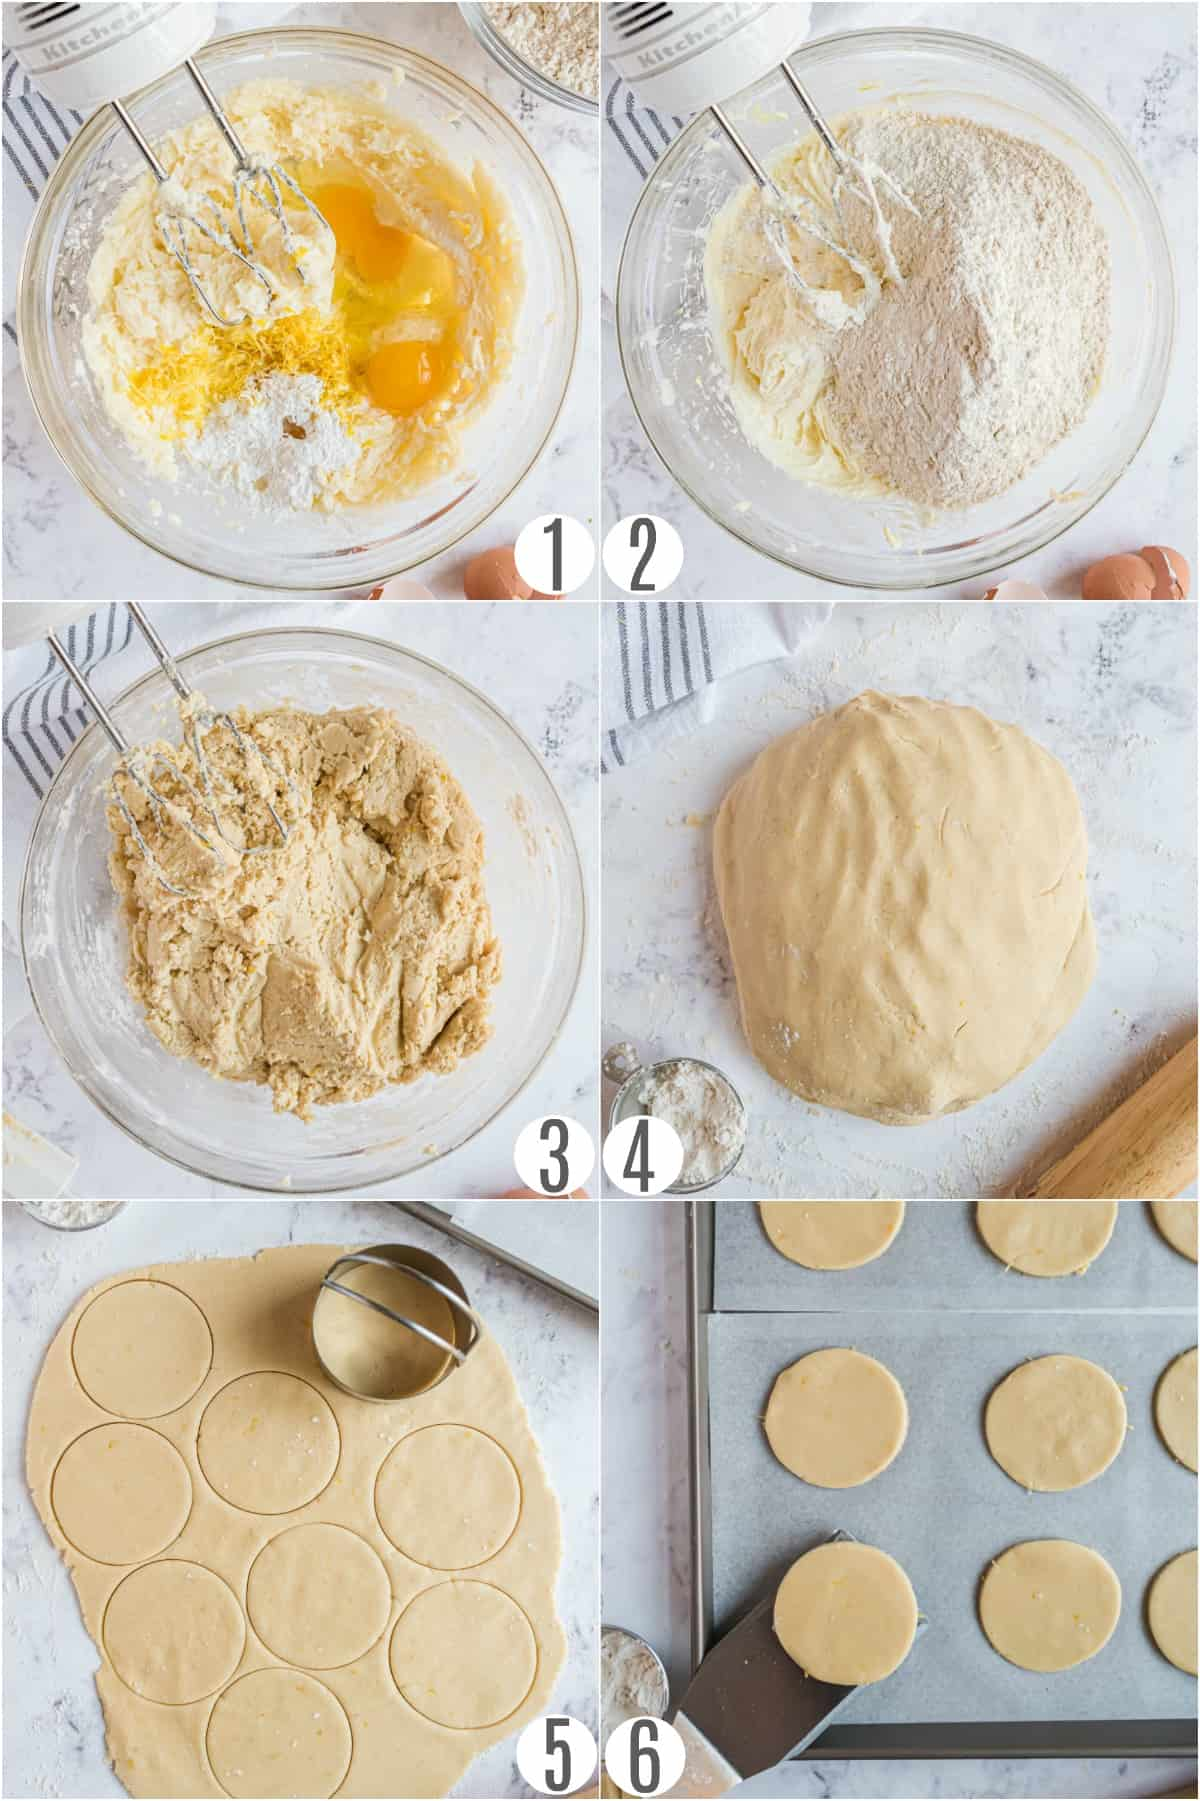 Step by step photos showing how to make cut out sugar cookies.